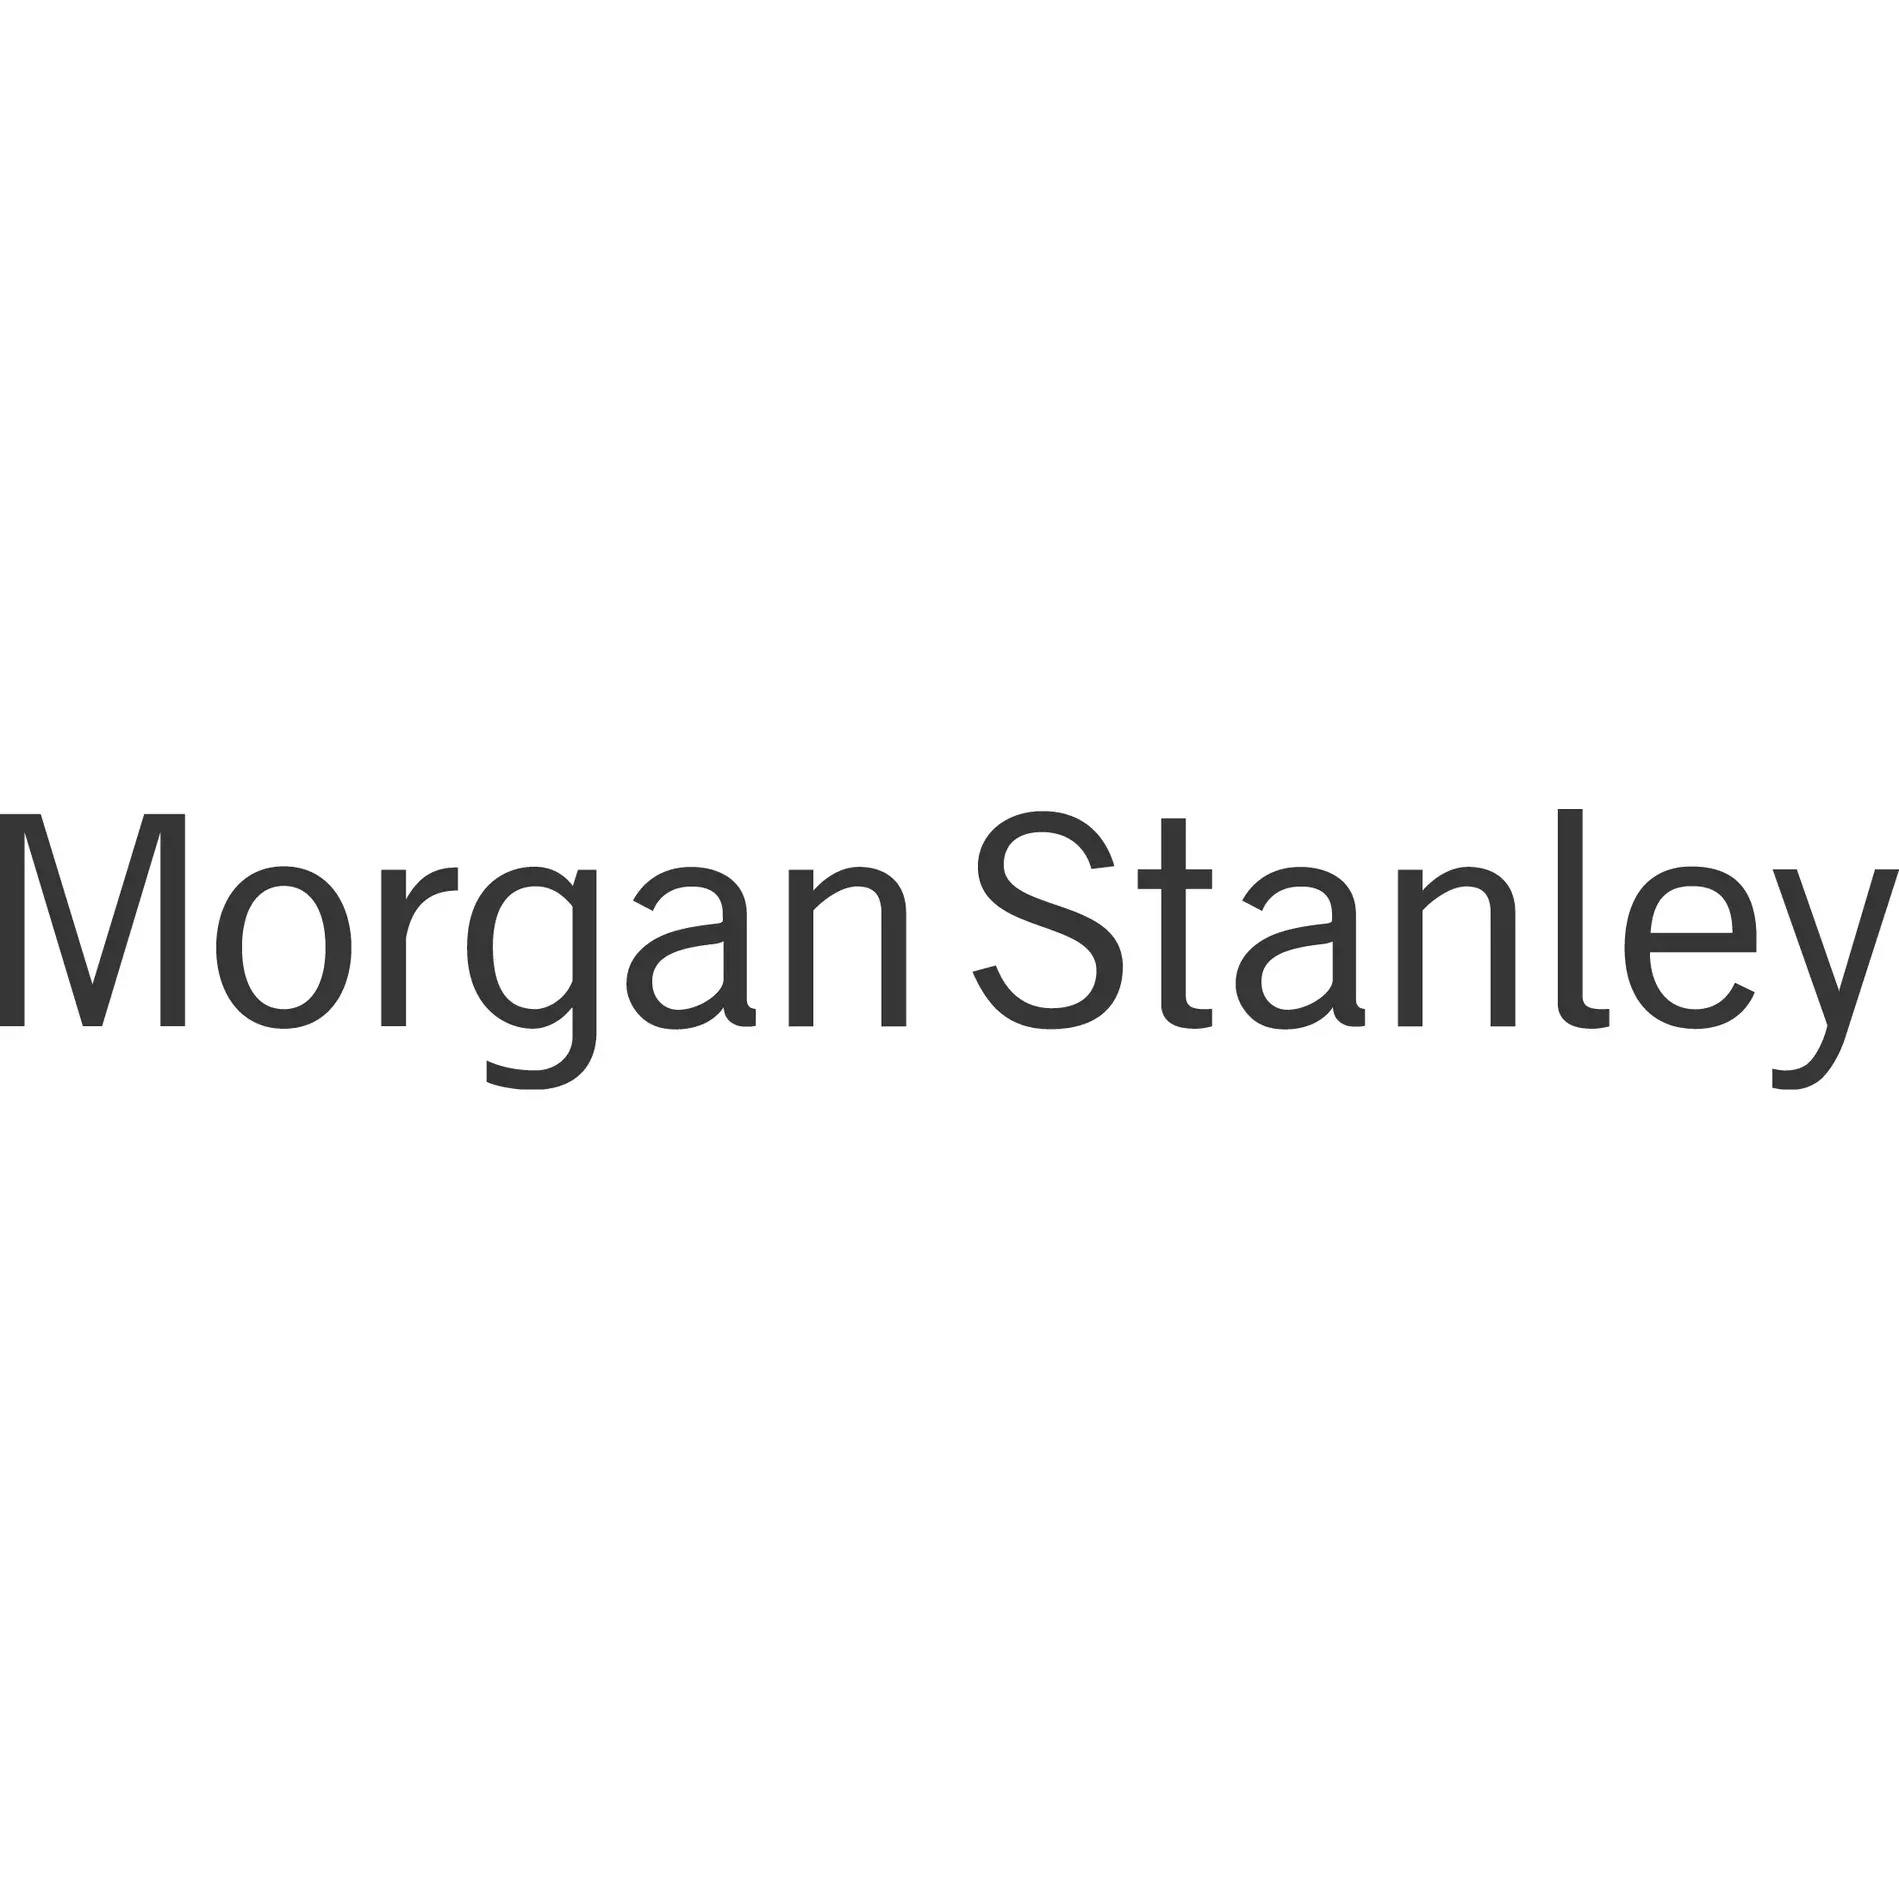 Verga Group - Morgan Stanley